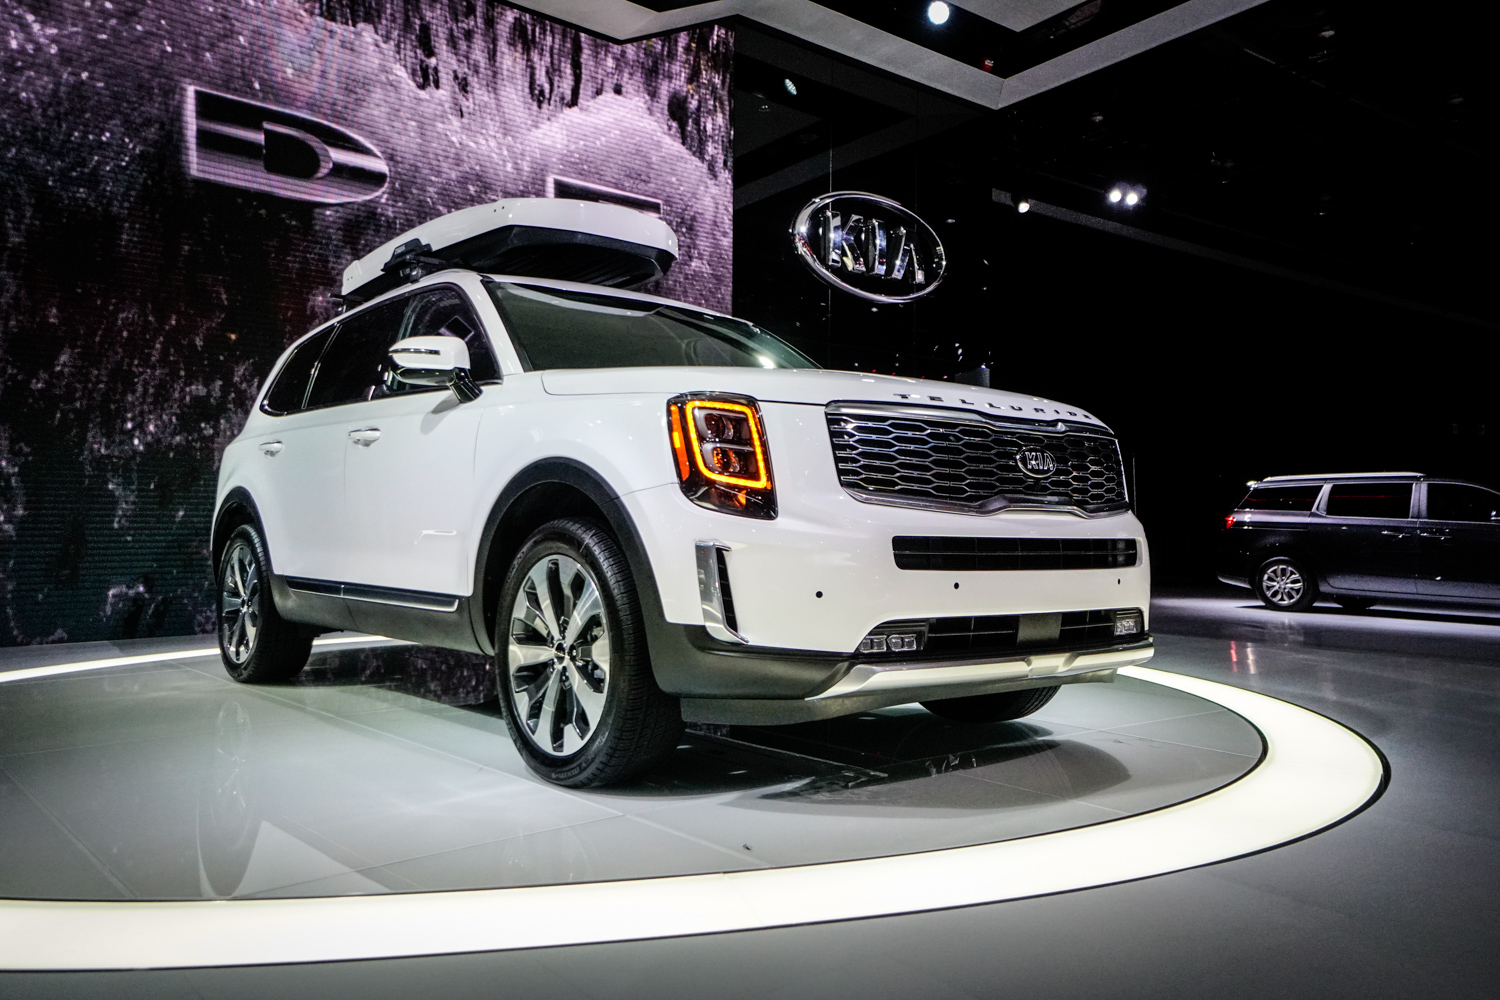 The 2020 Kia Telluride is a flagship luxury SUV with big ambitions